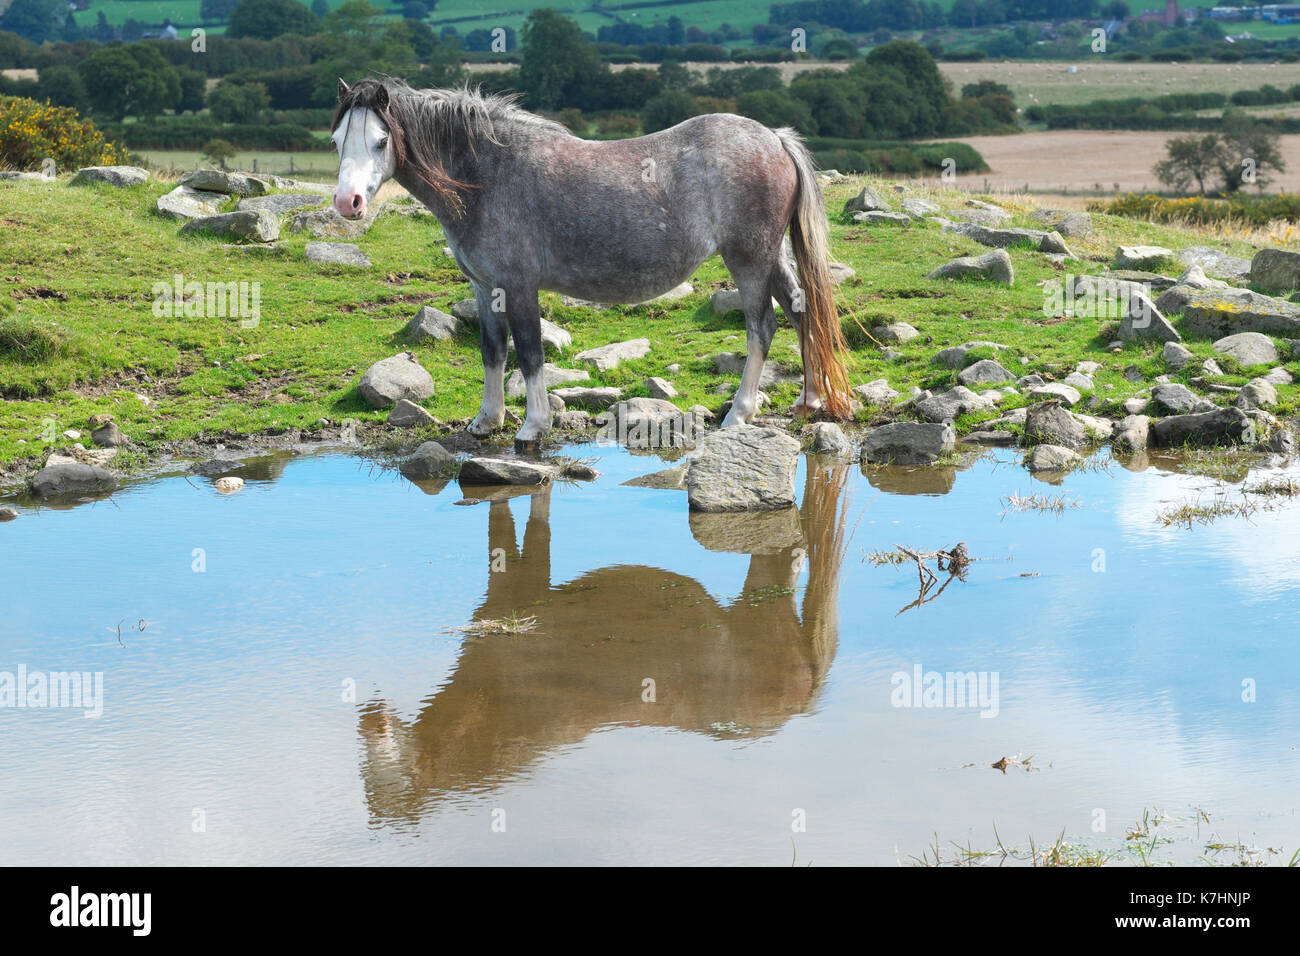 Hergest Ridge, Herefordshire, UK 16th September, 2017. - A beautiful early autumn afternoon with temperatues up to 15c on the 426m high Hergest Ridge - Hergest Ridge straddles the border with Wales and is home to a small herd of wild ponies. Credit: Steven May/Alamy Live News - Stock Image